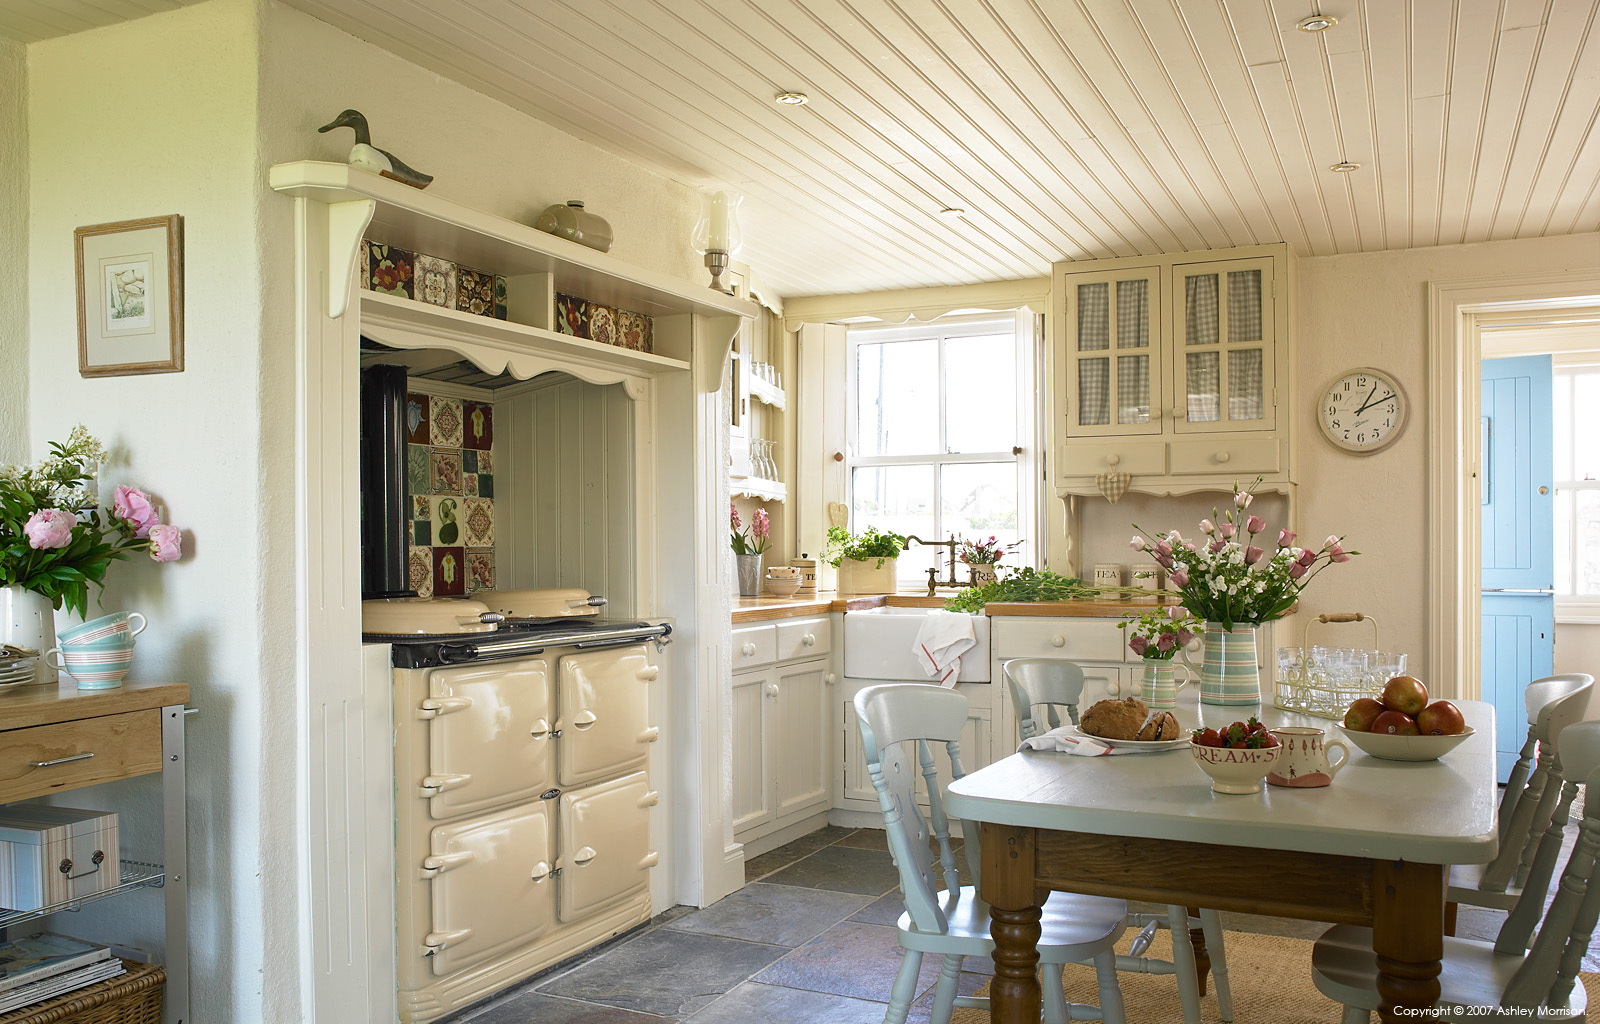 Kitchen in a thatched cottage located near Portaferry in County Down by Ashley Morrison.